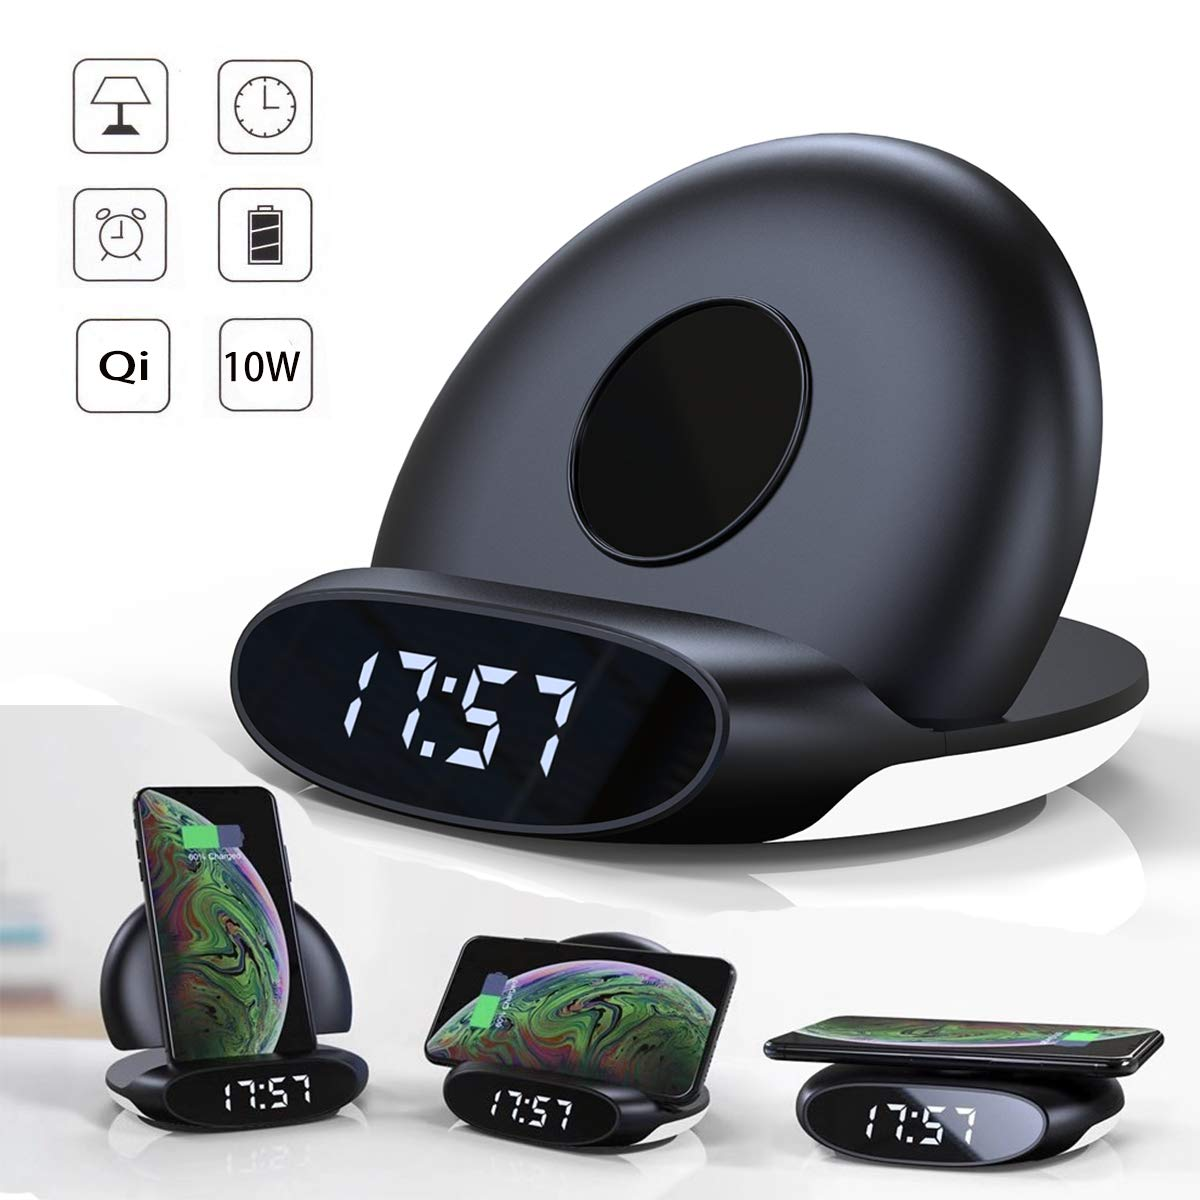 4 in 1 Foldable Wireless Charger[Alarm Clock&Night Light] Wireless Charging Stand/Pad Compatible for iPhone 11/11 Pro/11 Pro Max/XR/XS Max/XS/X/8 Plus Galaxy Note10/Note10 +Plus/ S10/S10 Plus/S9 Plus by JASGO